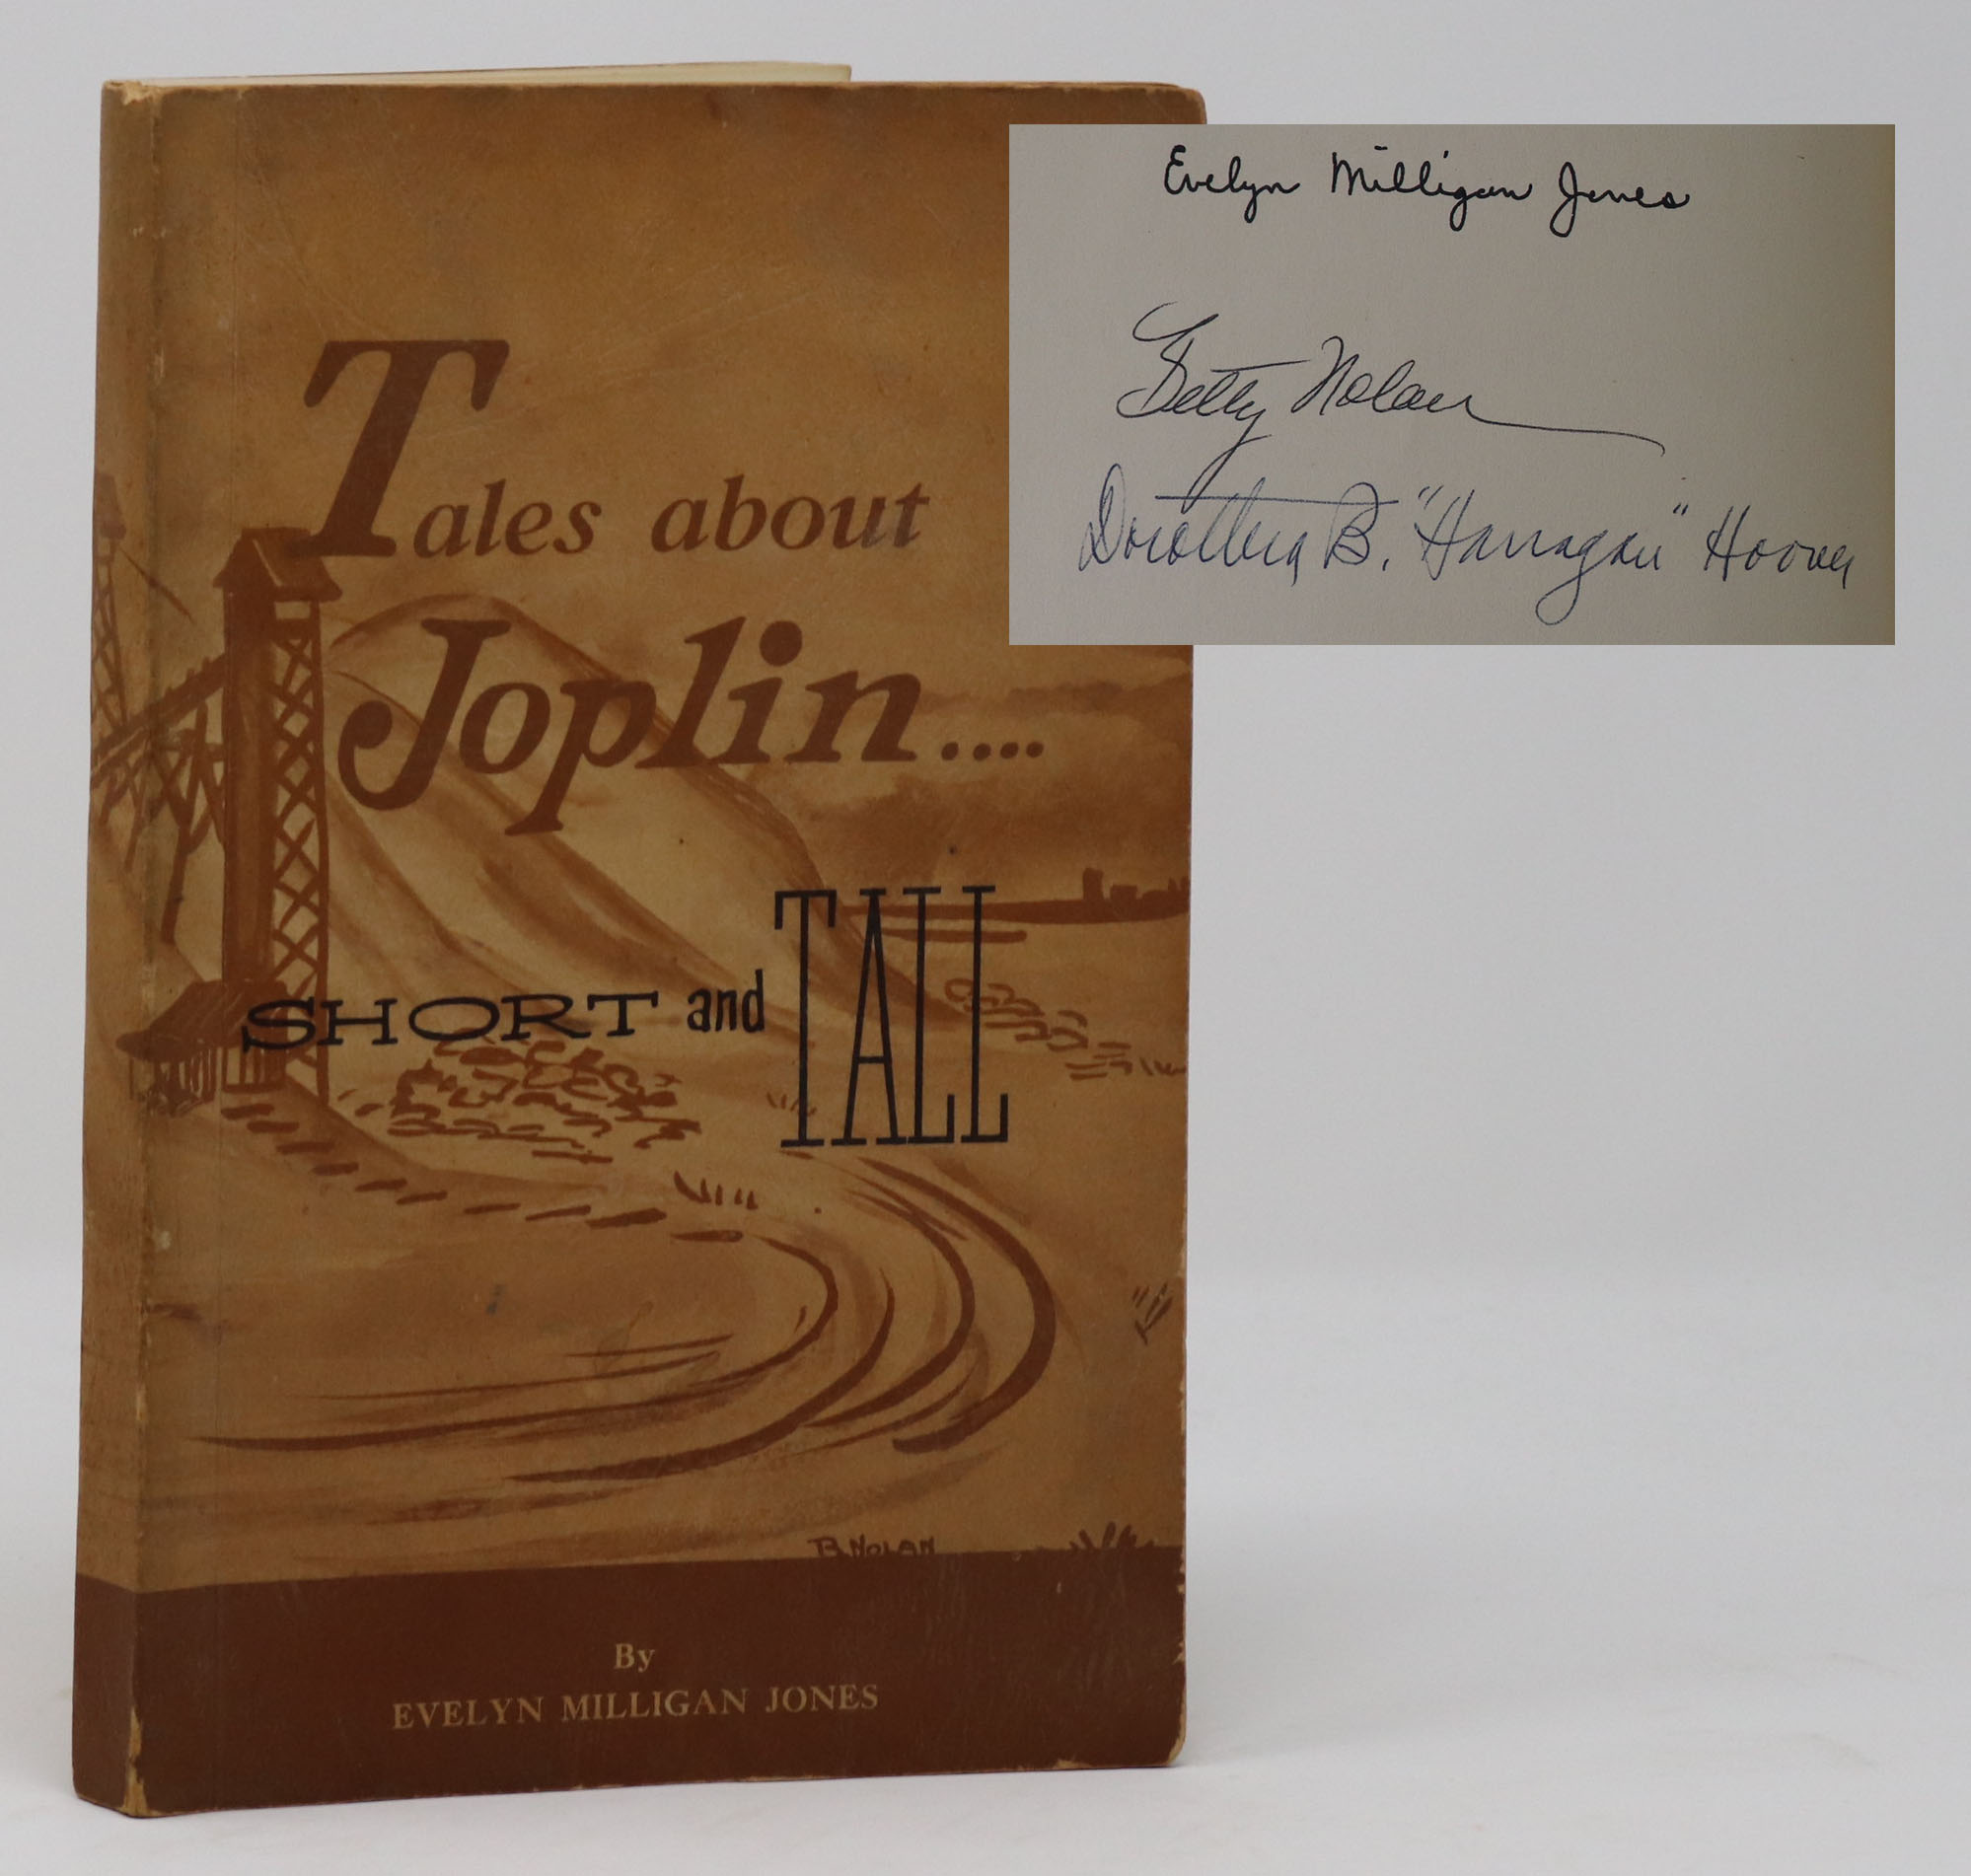 Image for Tales about Joplin... Short and Tall